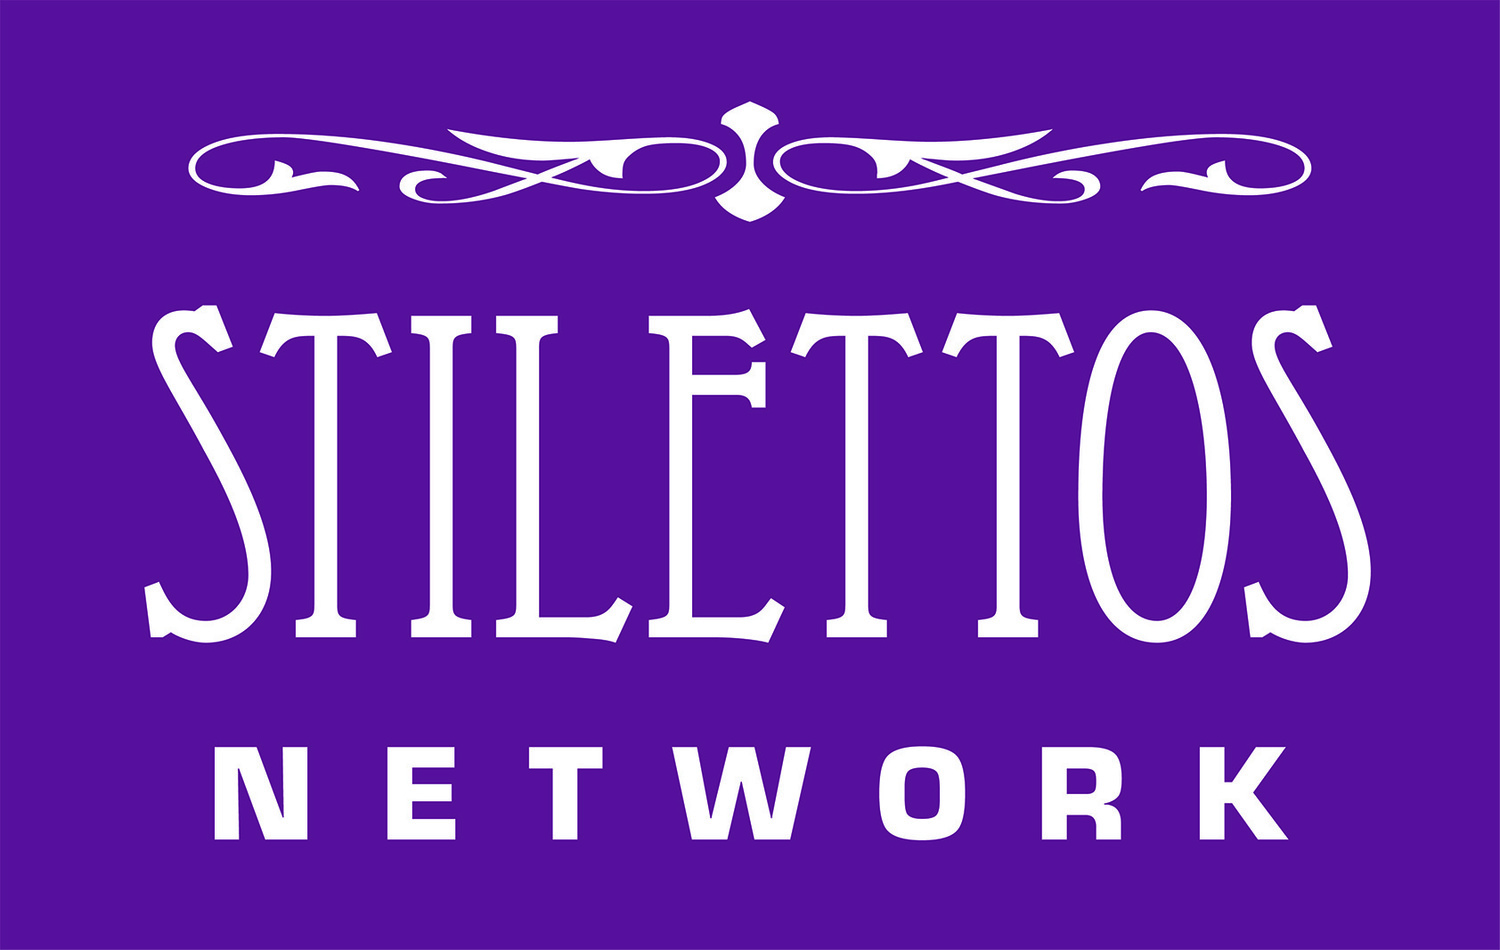 Stilettos Network